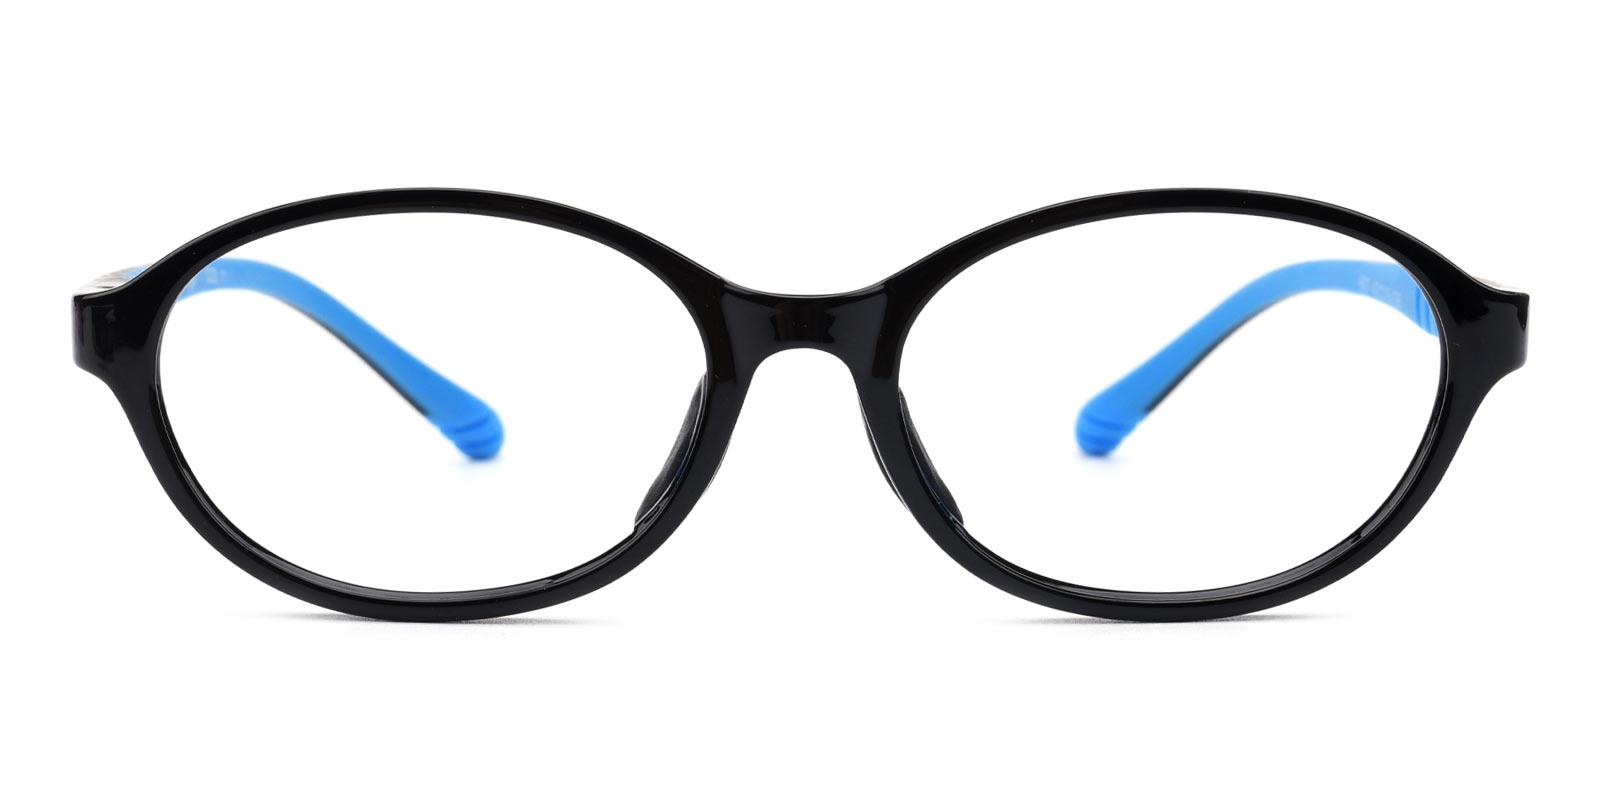 Charles-Multicolor-Oval-TR-Eyeglasses-additional2